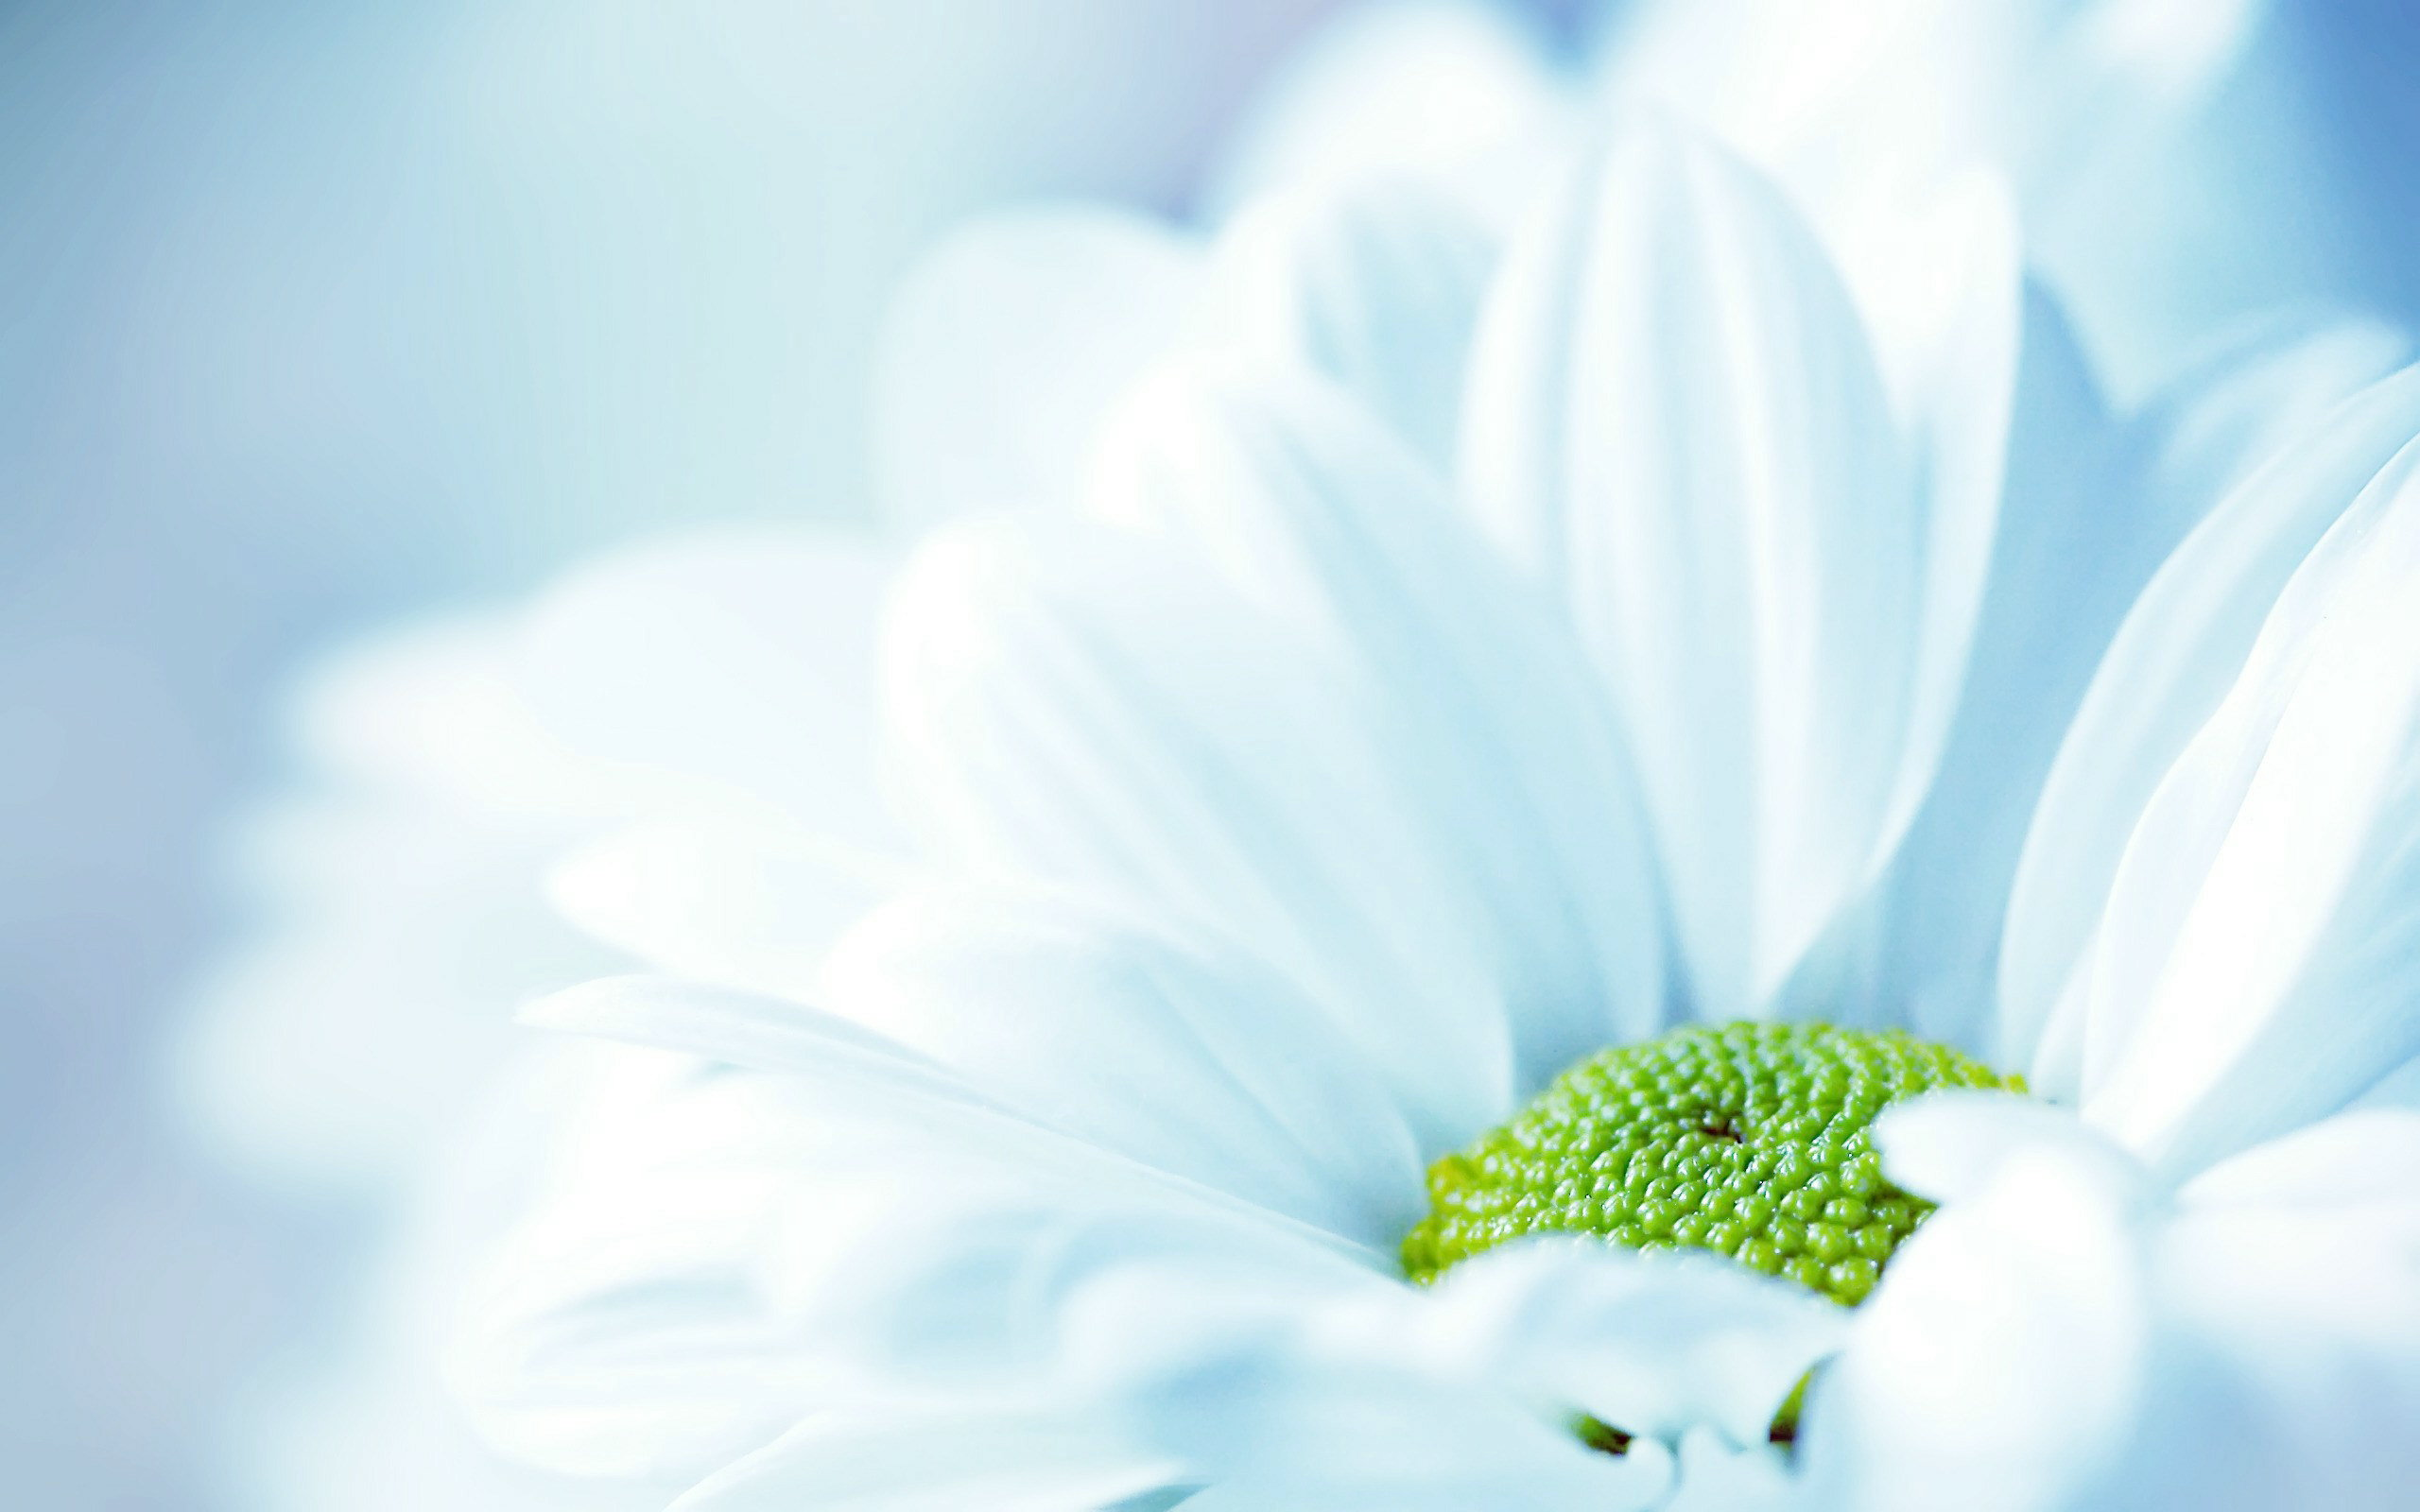 fresh white flower wallpapers - 2560x1600 - 231639